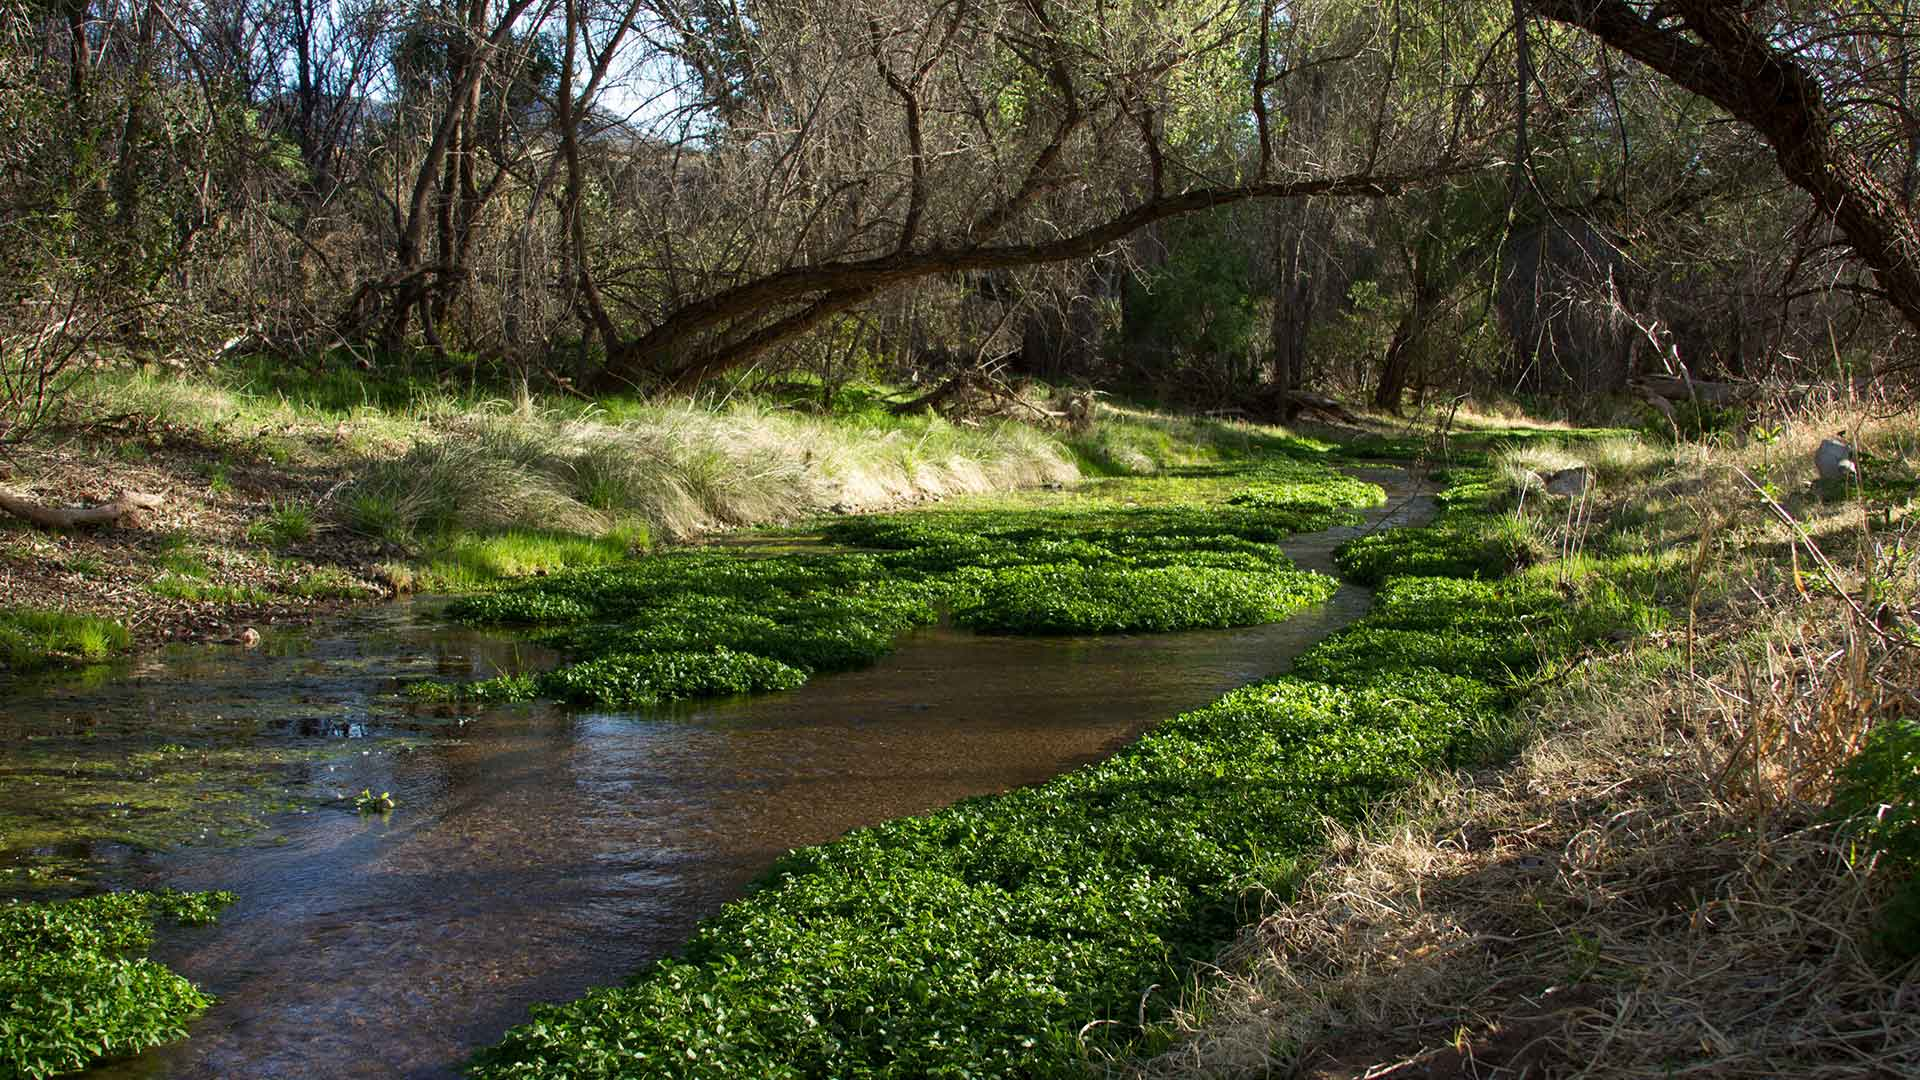 The Nature Conservancy's Patagonia-Sonoita Creek Preserve.